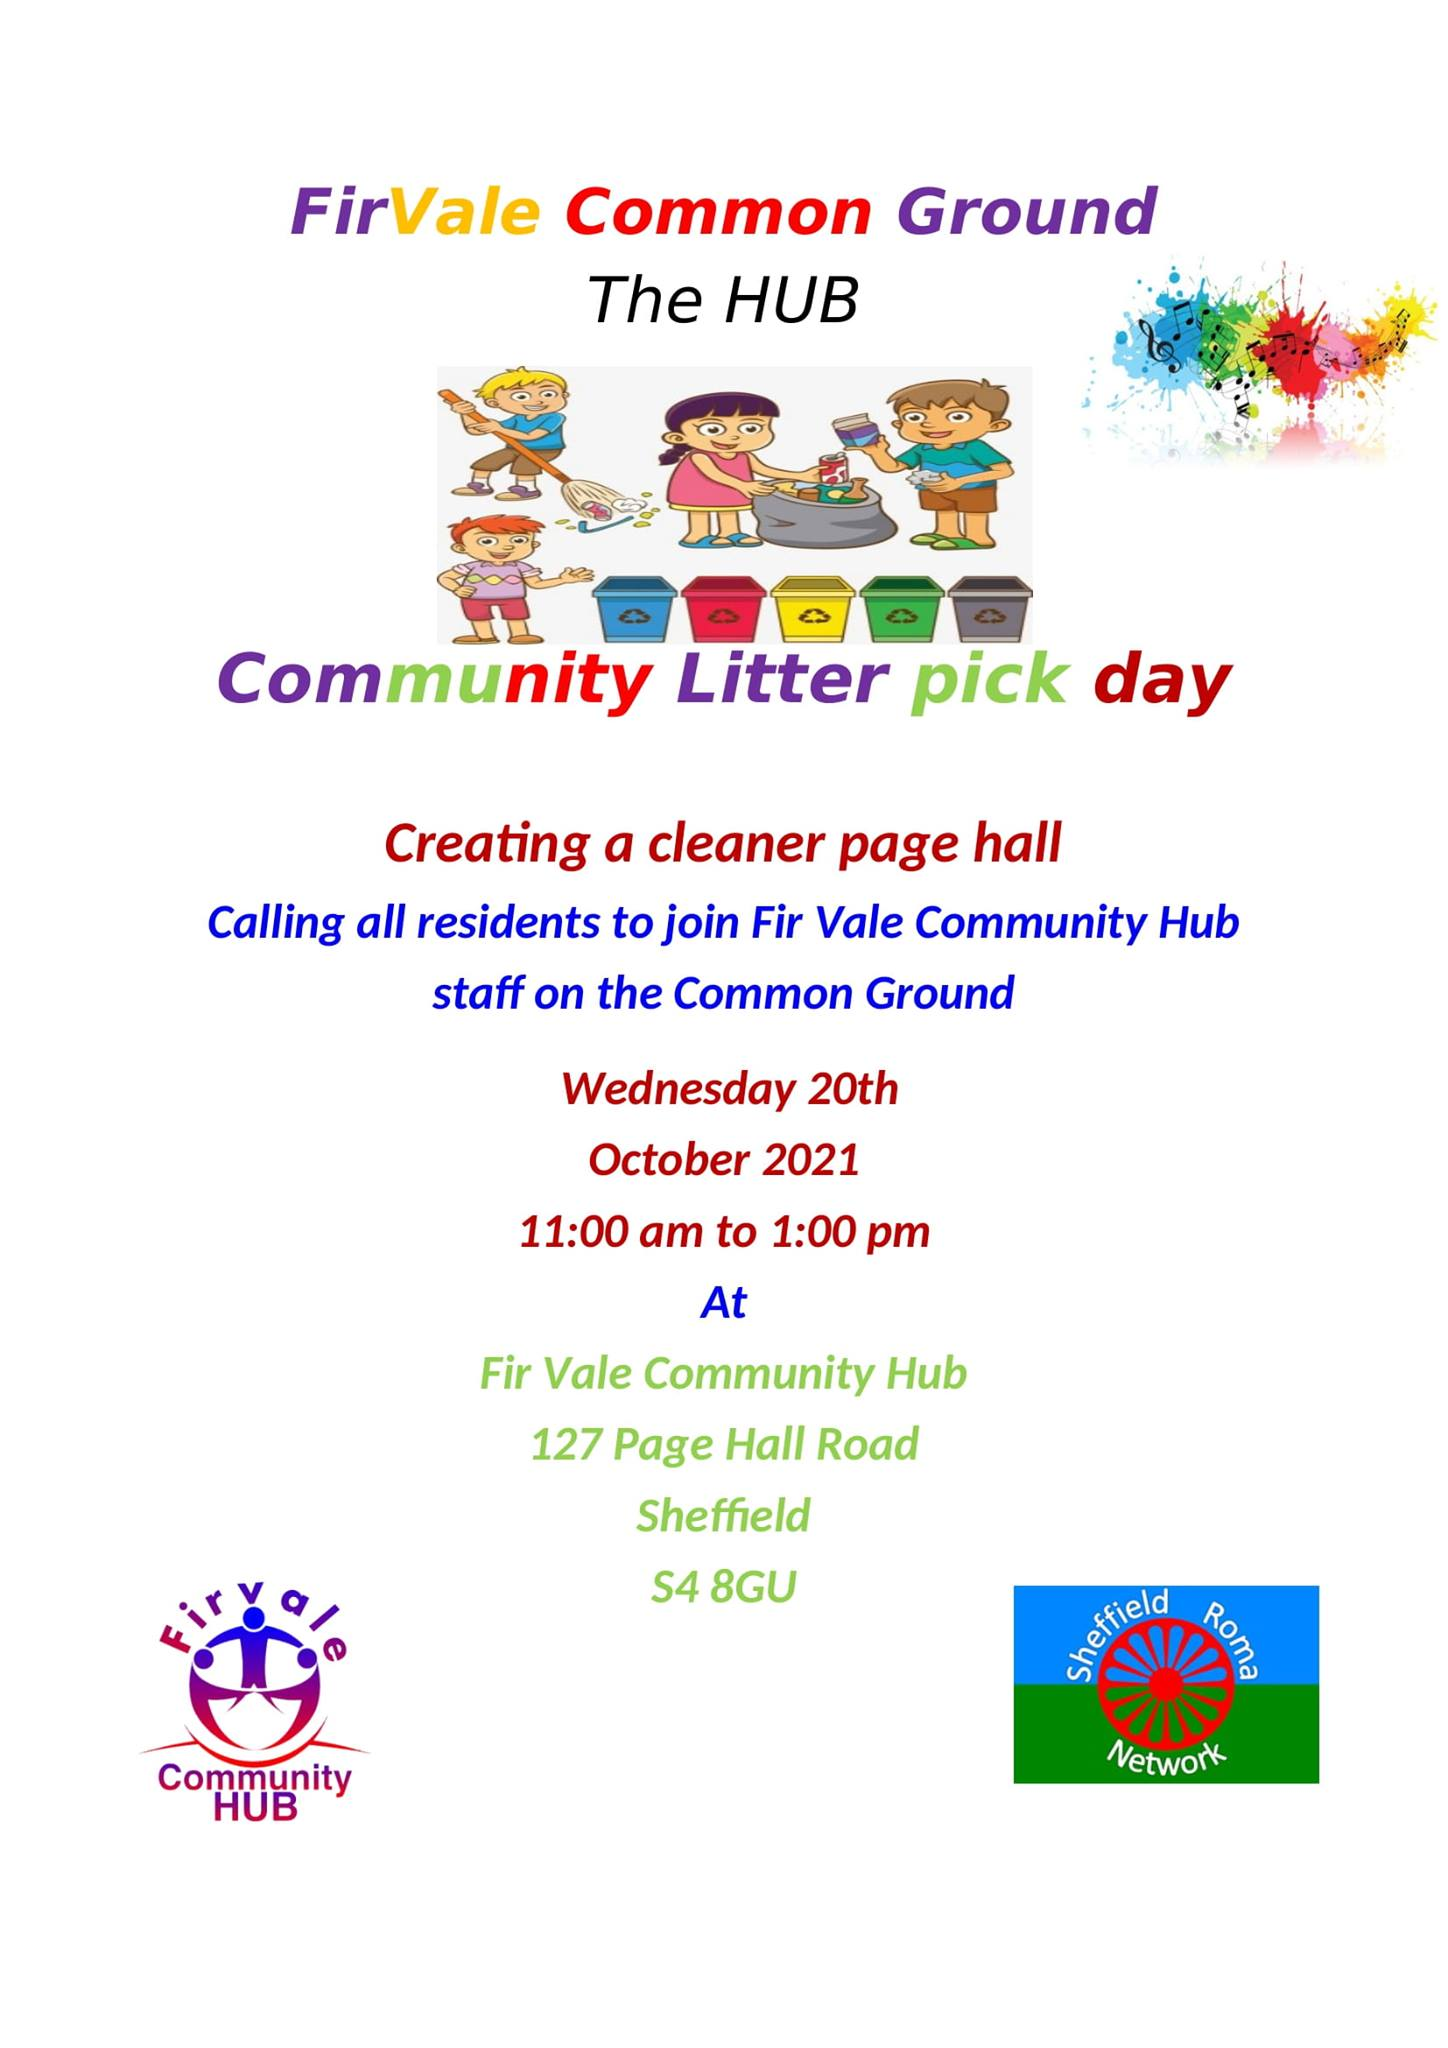 Fir Vale Common Ground Community Litter pick day Creating a cleaner page hall Calling all residents to join Fir Vale Community Hub staff on the Common Ground Wednesday 20th October 2021 11:00 am to 1:00 pm at Fir Vale Community Hub, 127 Page Hall Road, Sheffield S4 8GU.